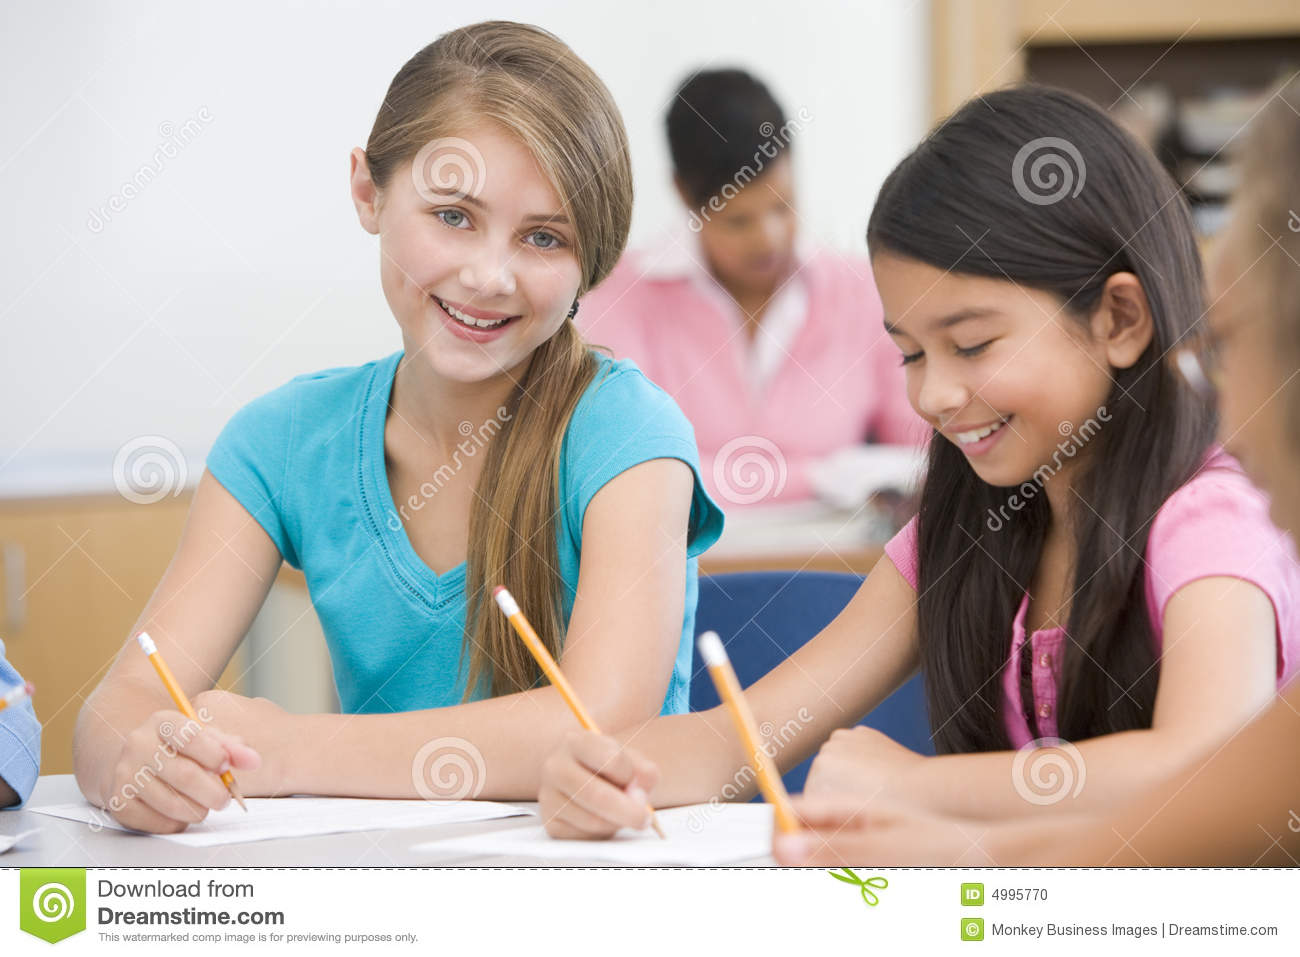 essay on myself for school students We have come up with 100 cool topic ideas for college students neindiaresearchorg high school essays interesting personal essay ideas.